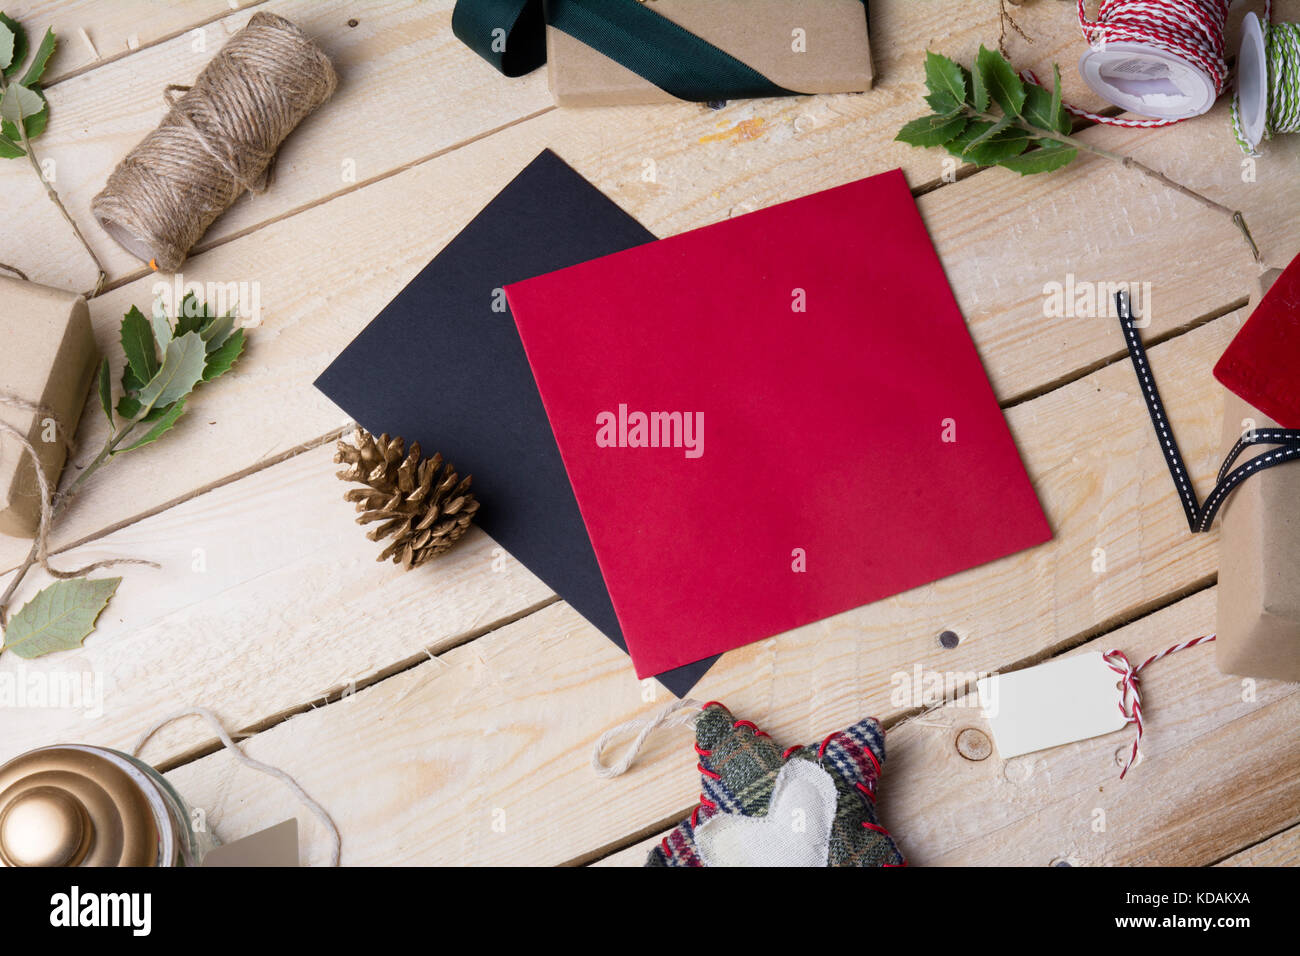 Greetings Card And Envelope Stock Photos Greetings Card And